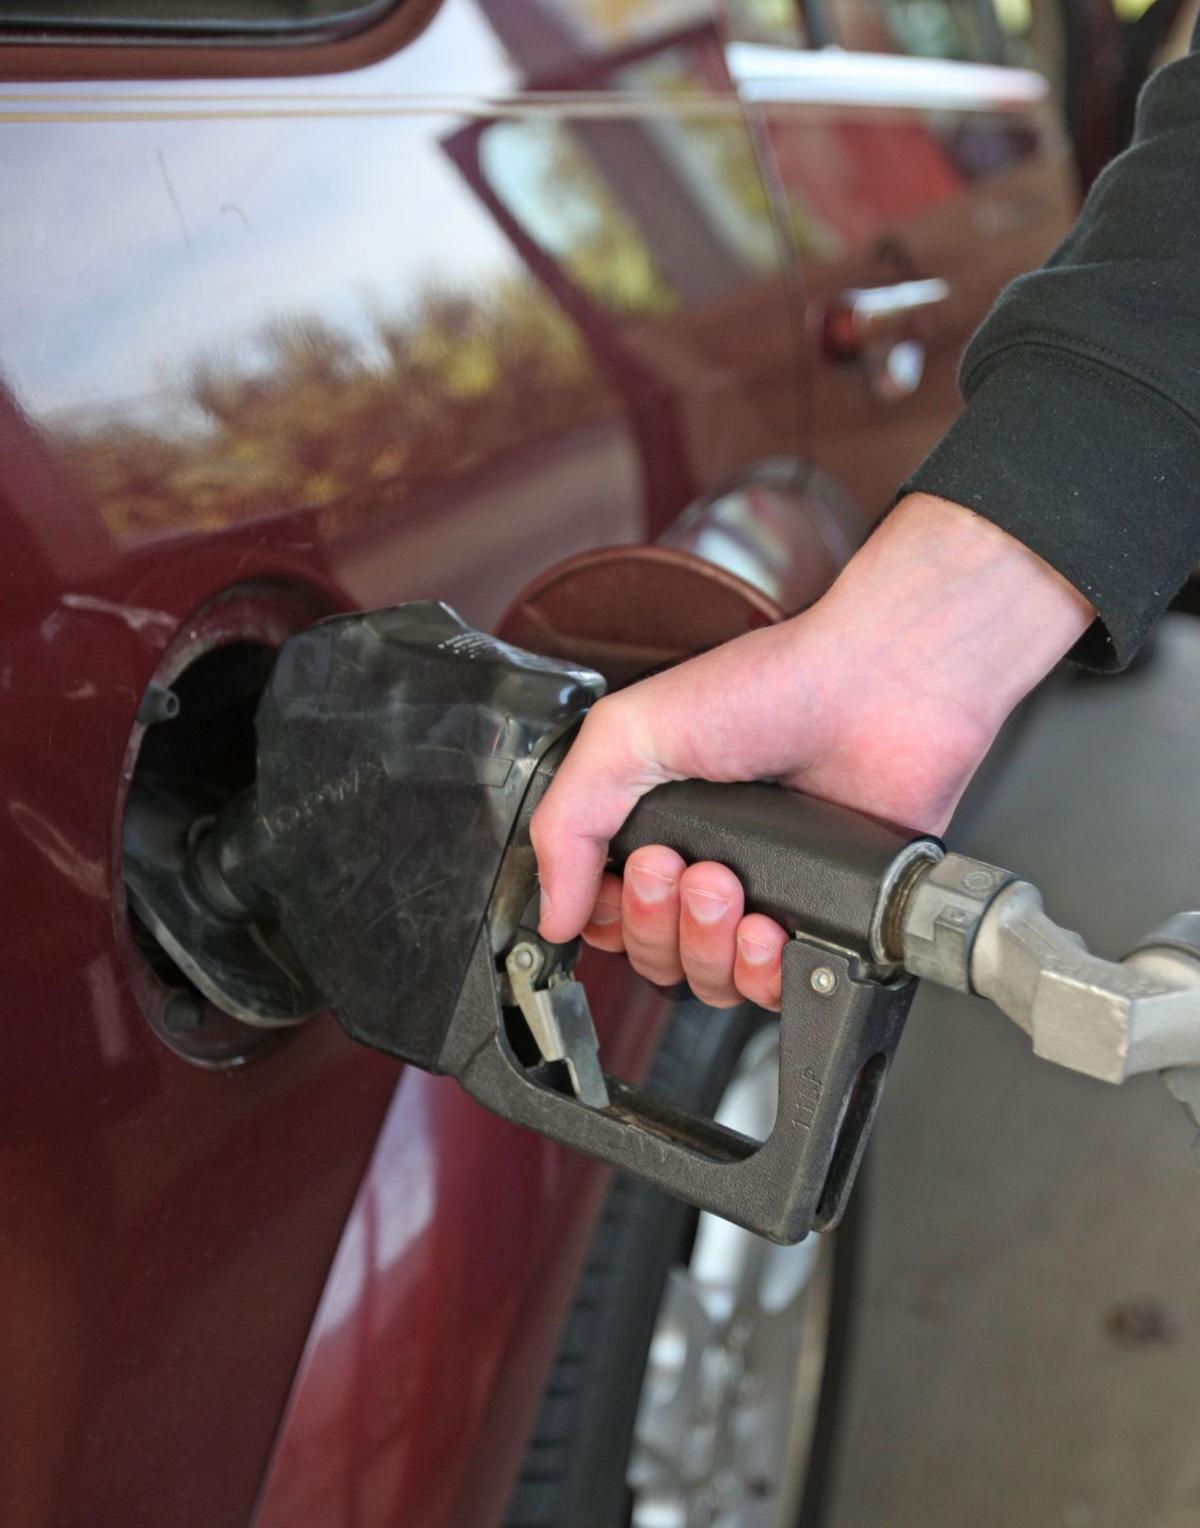 Increased fuel demand report causes S.C. gas prices to jump